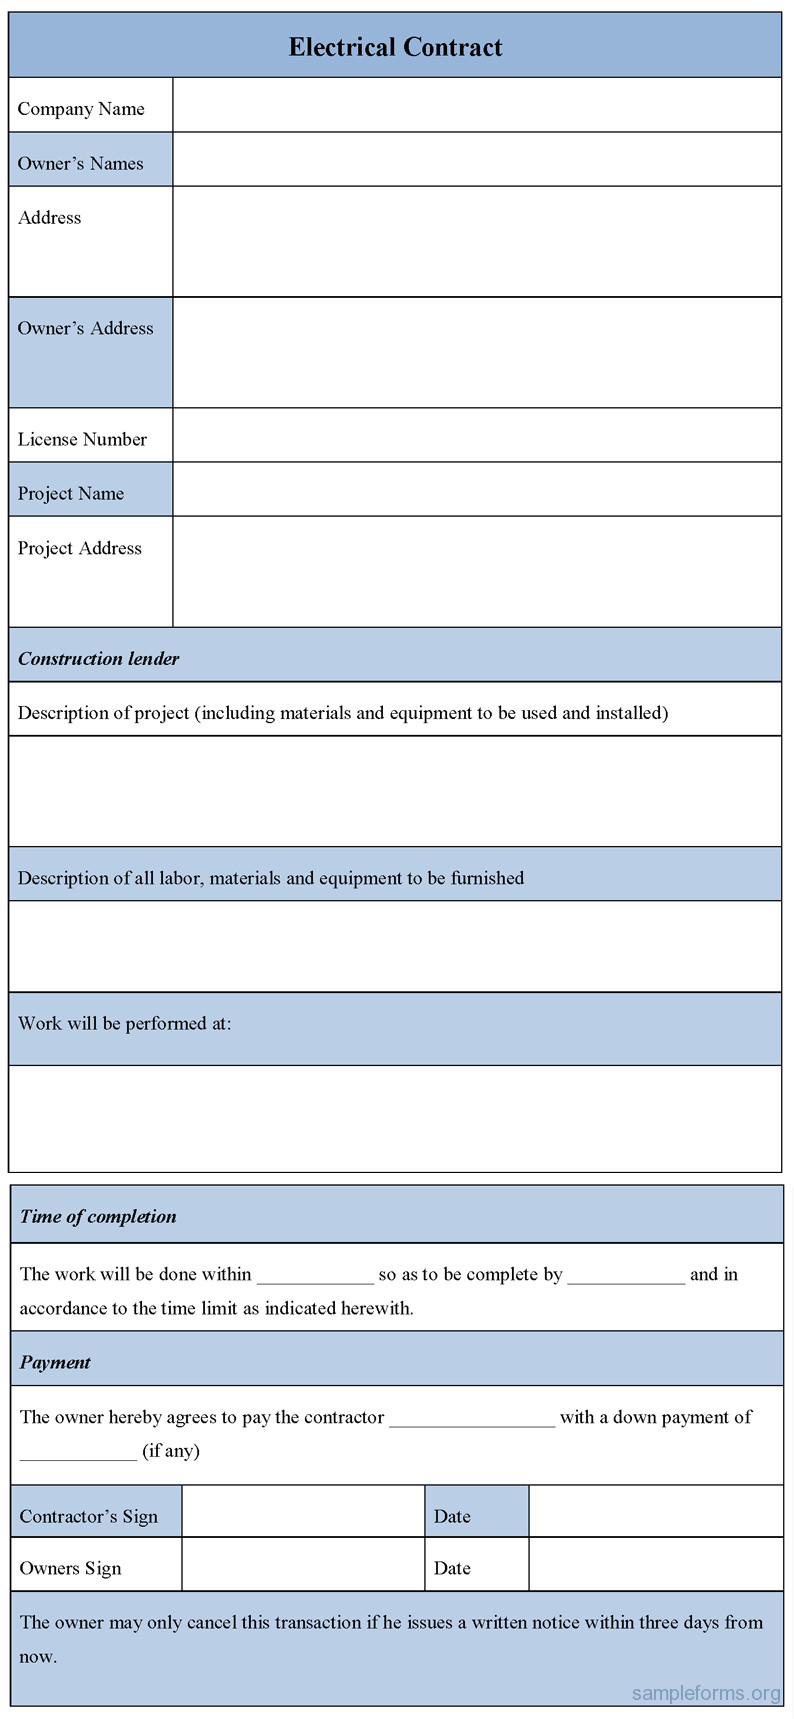 electrical contract form